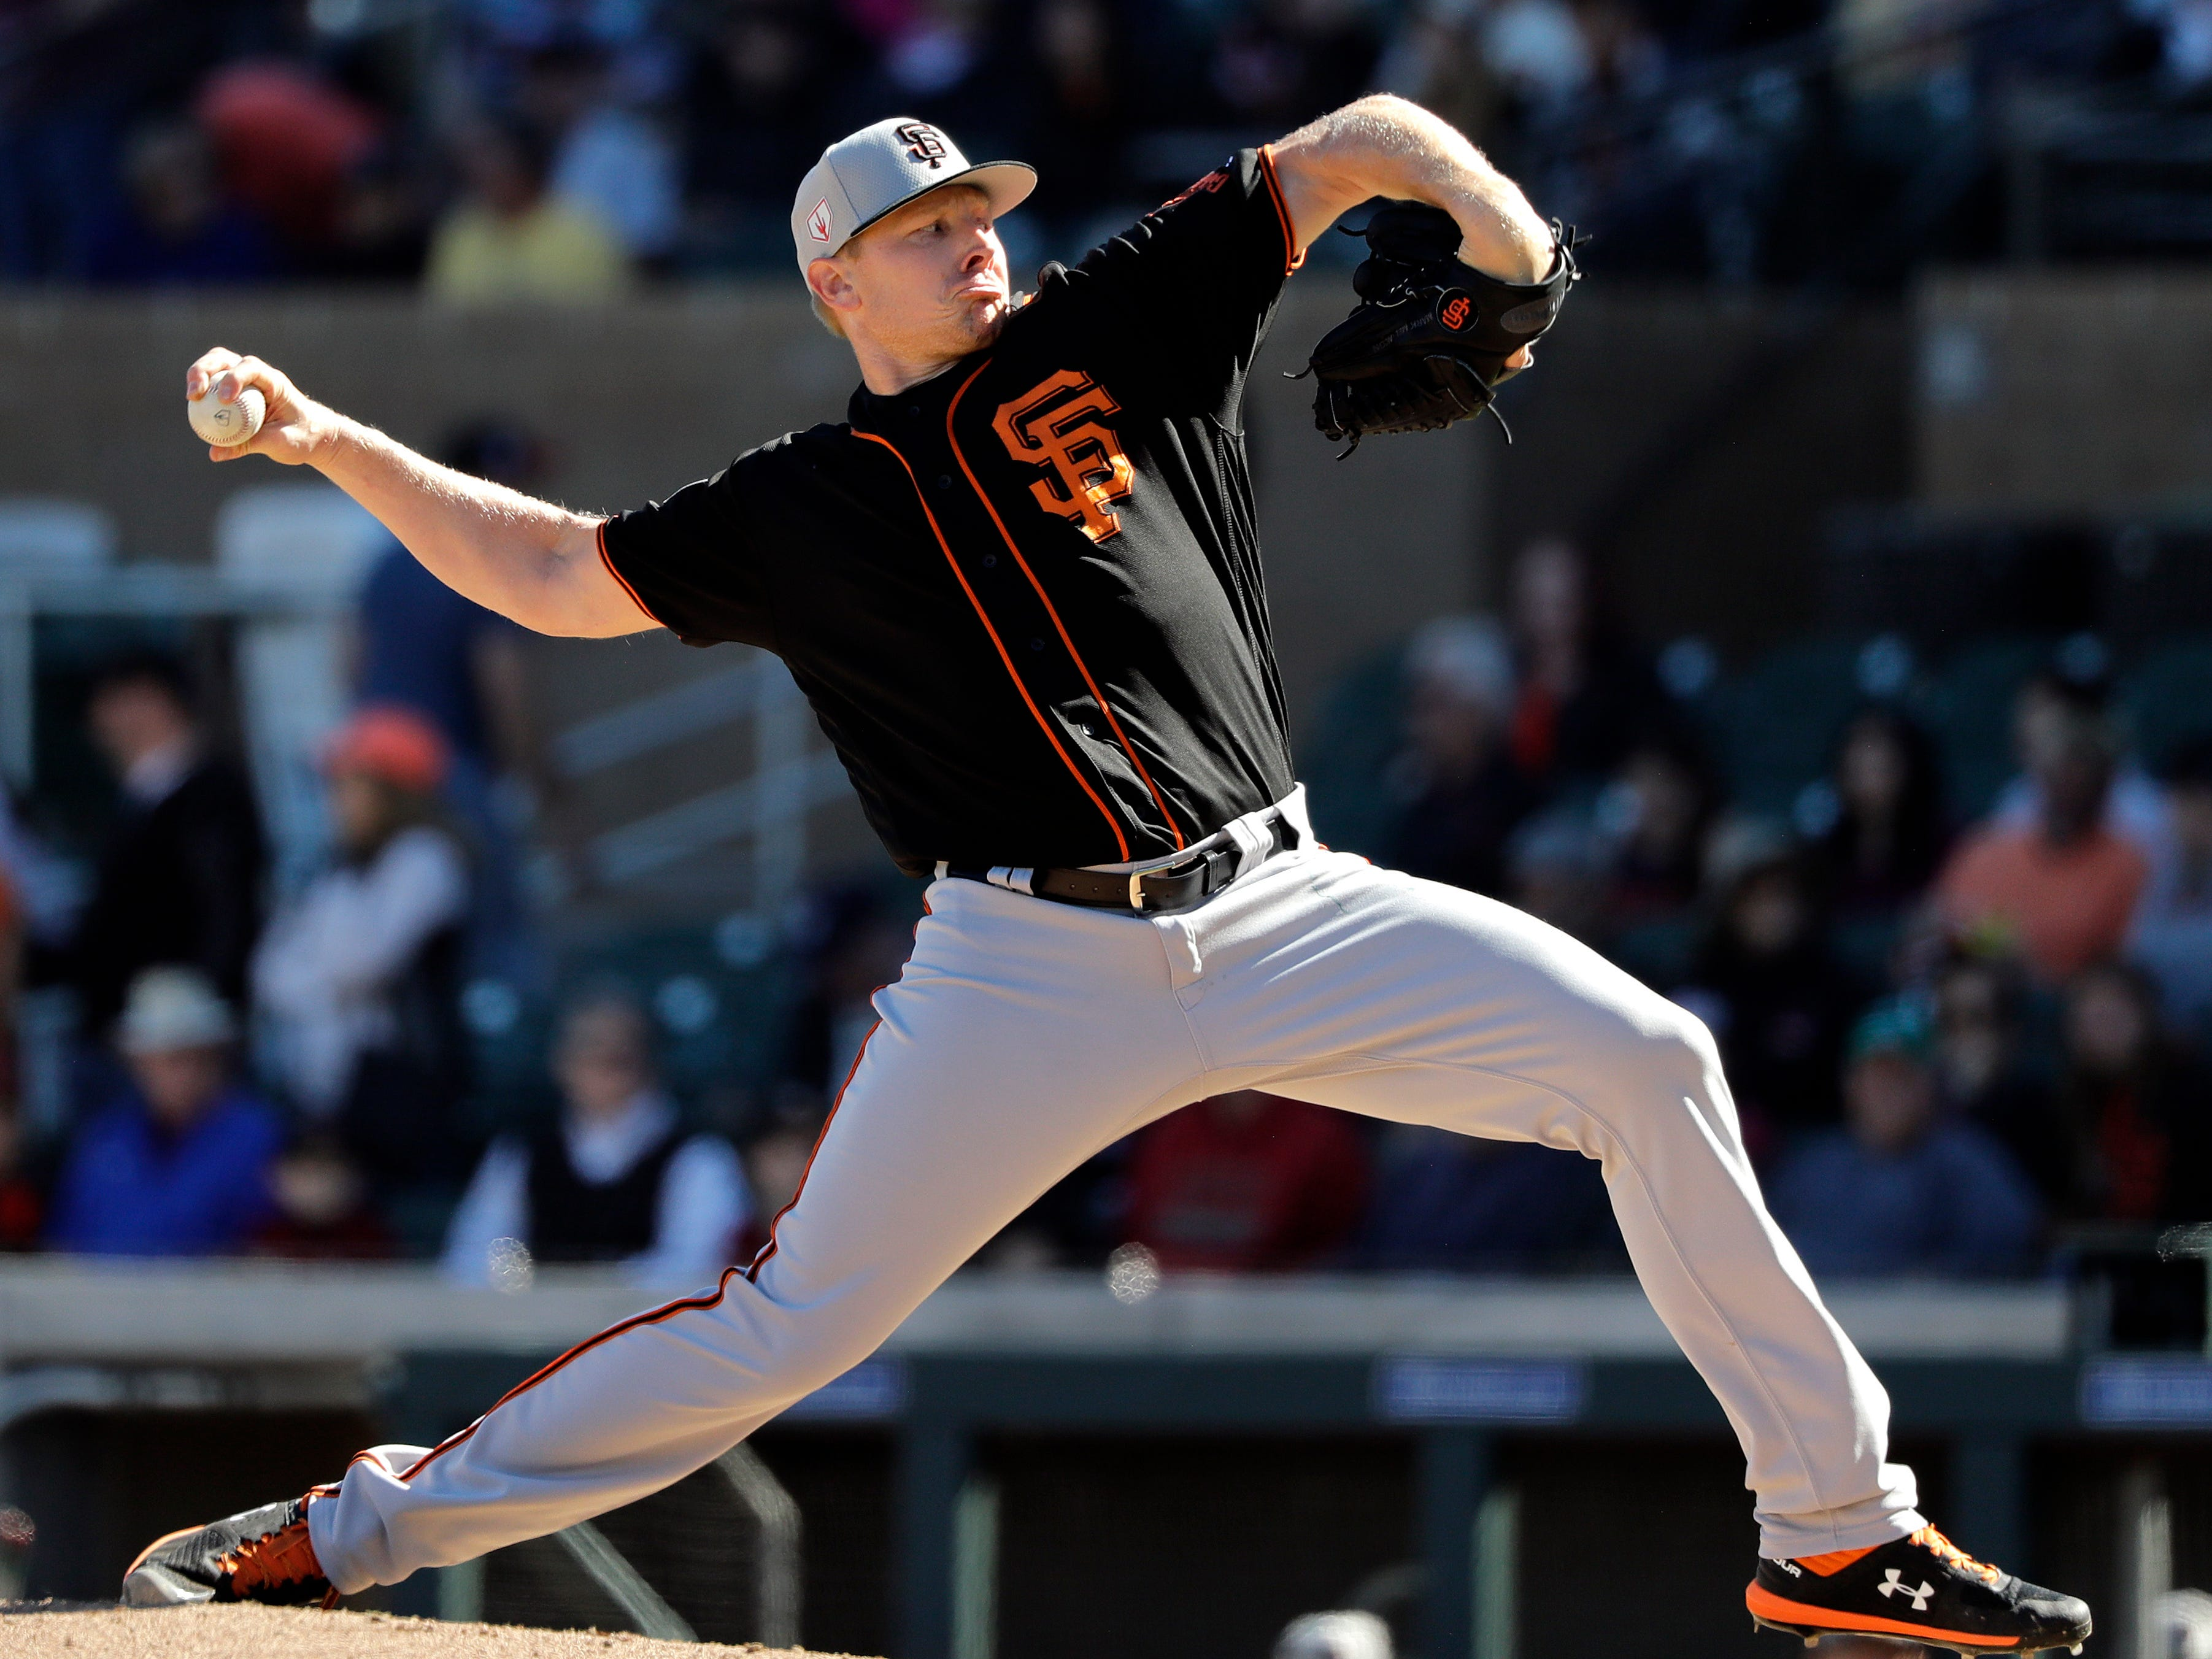 San Francisco Giants relief pitcher Mark Melancon throws to an Arizona Diamondbacks batter during the seventh inning of a spring training baseball game Thursday, March 14, 2019, in Scottsdale, Ariz.